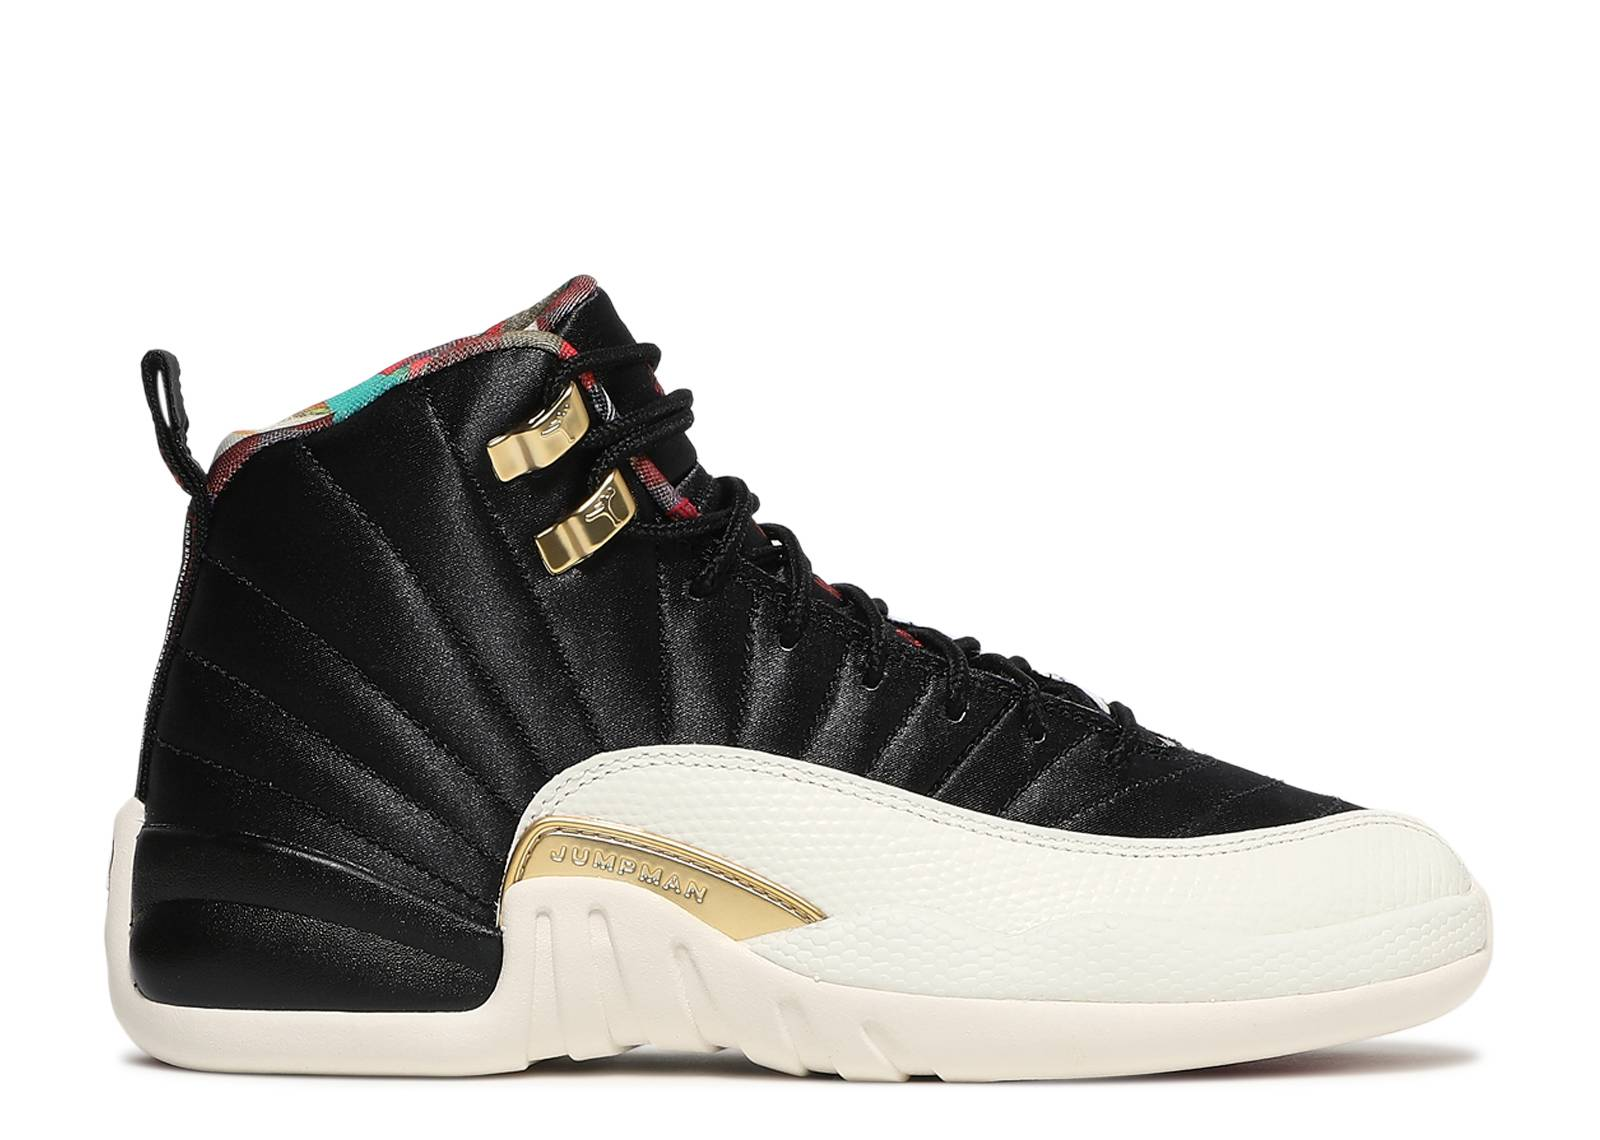 new style 7f587 7c9e3 May 2 air jordan 12 retro cny (gs)